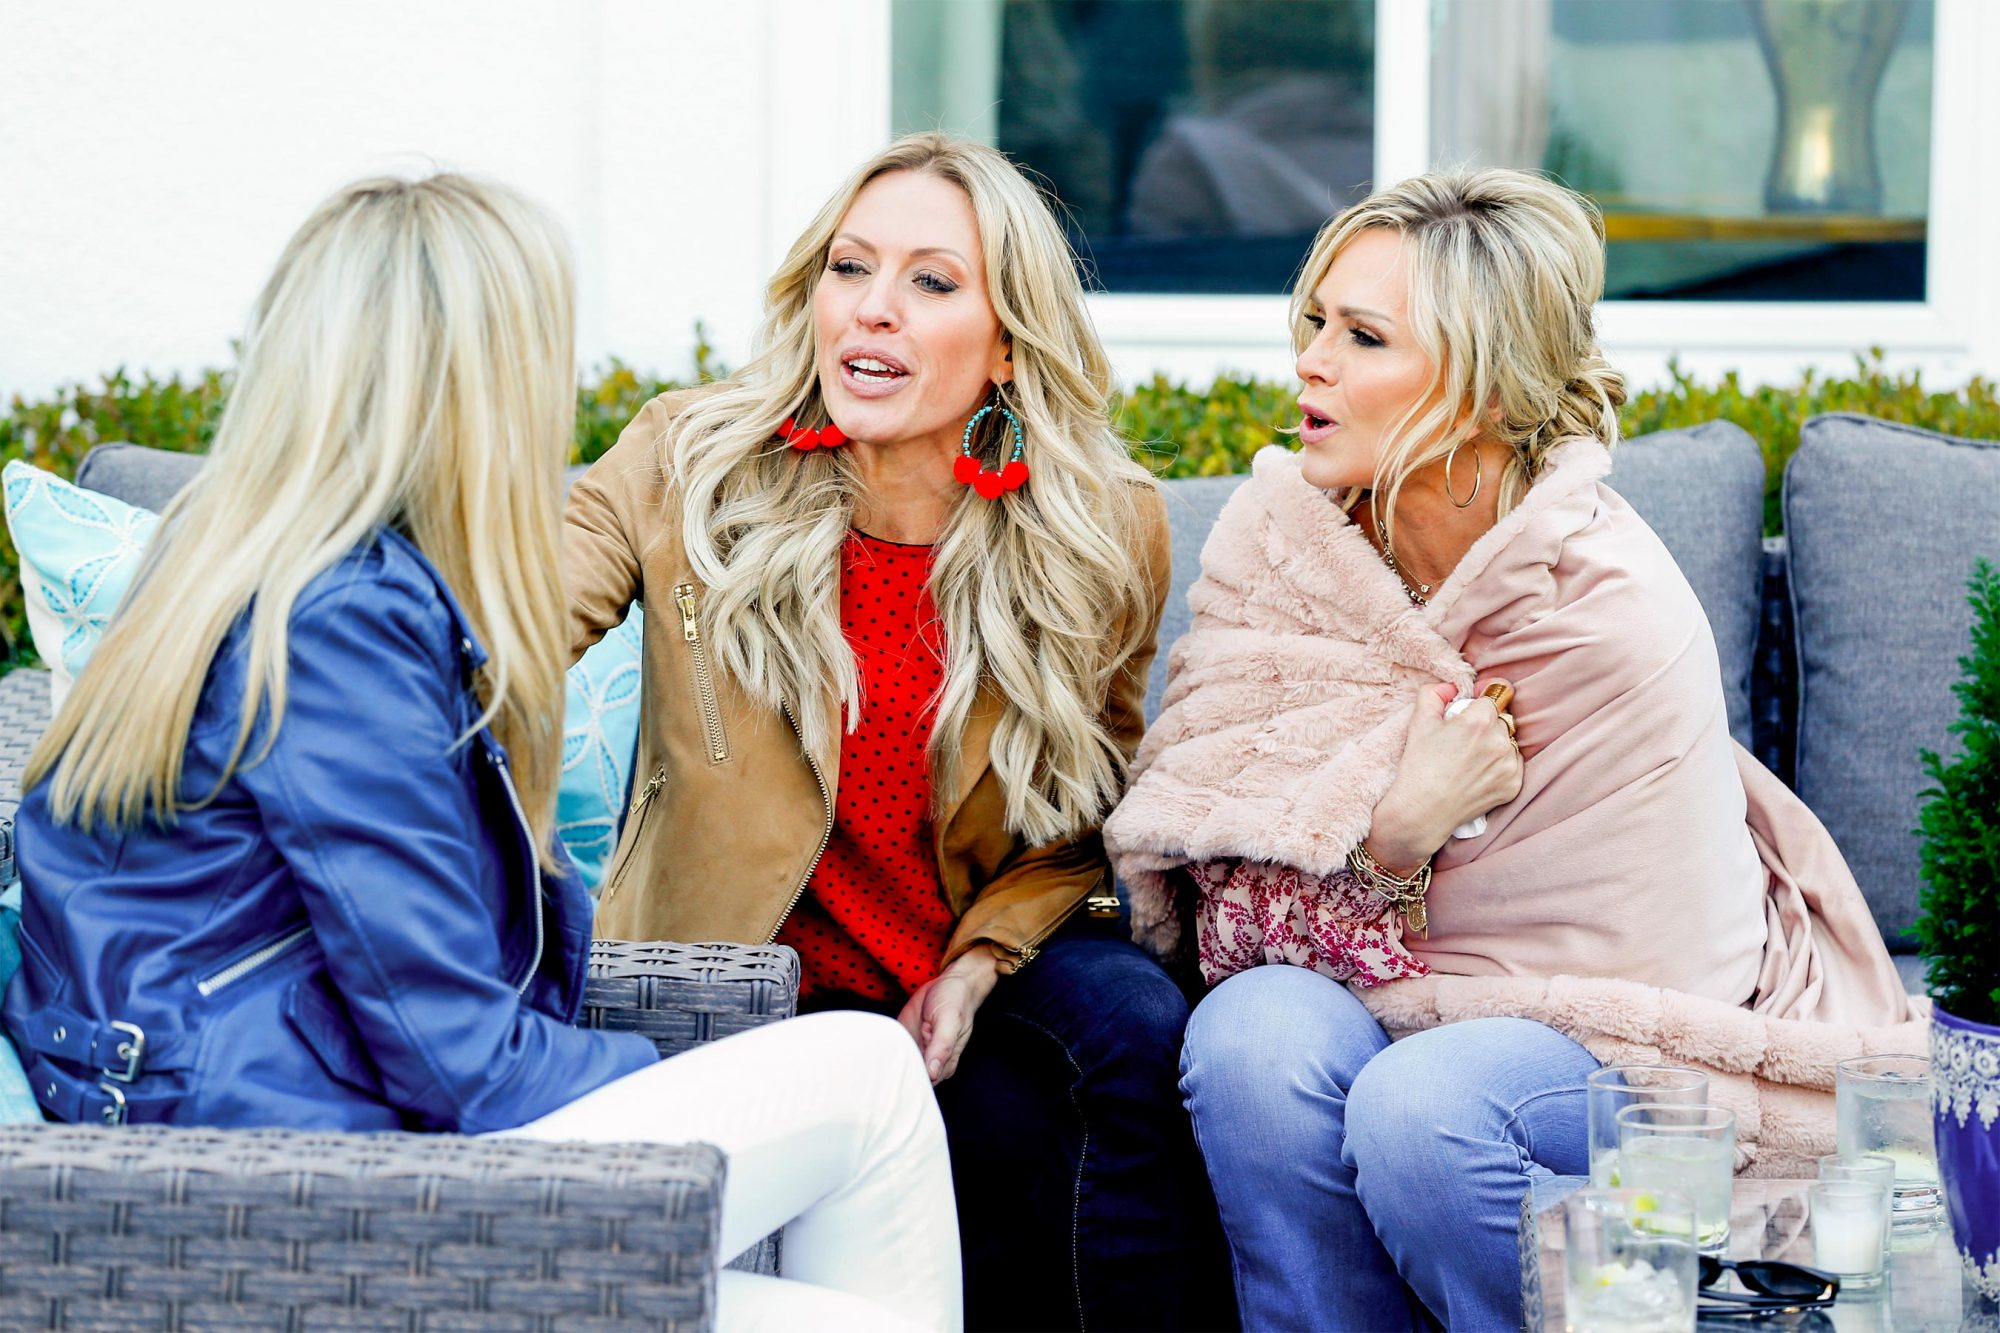 THE REAL HOUSEWIVES OF ORANGE COUNTY -- Episode 1402 -- Pictured: (l-r) Braunwyn Windham-Burke, Tamra Judge -- (Photo by: Phillip Faraone/Bravo)